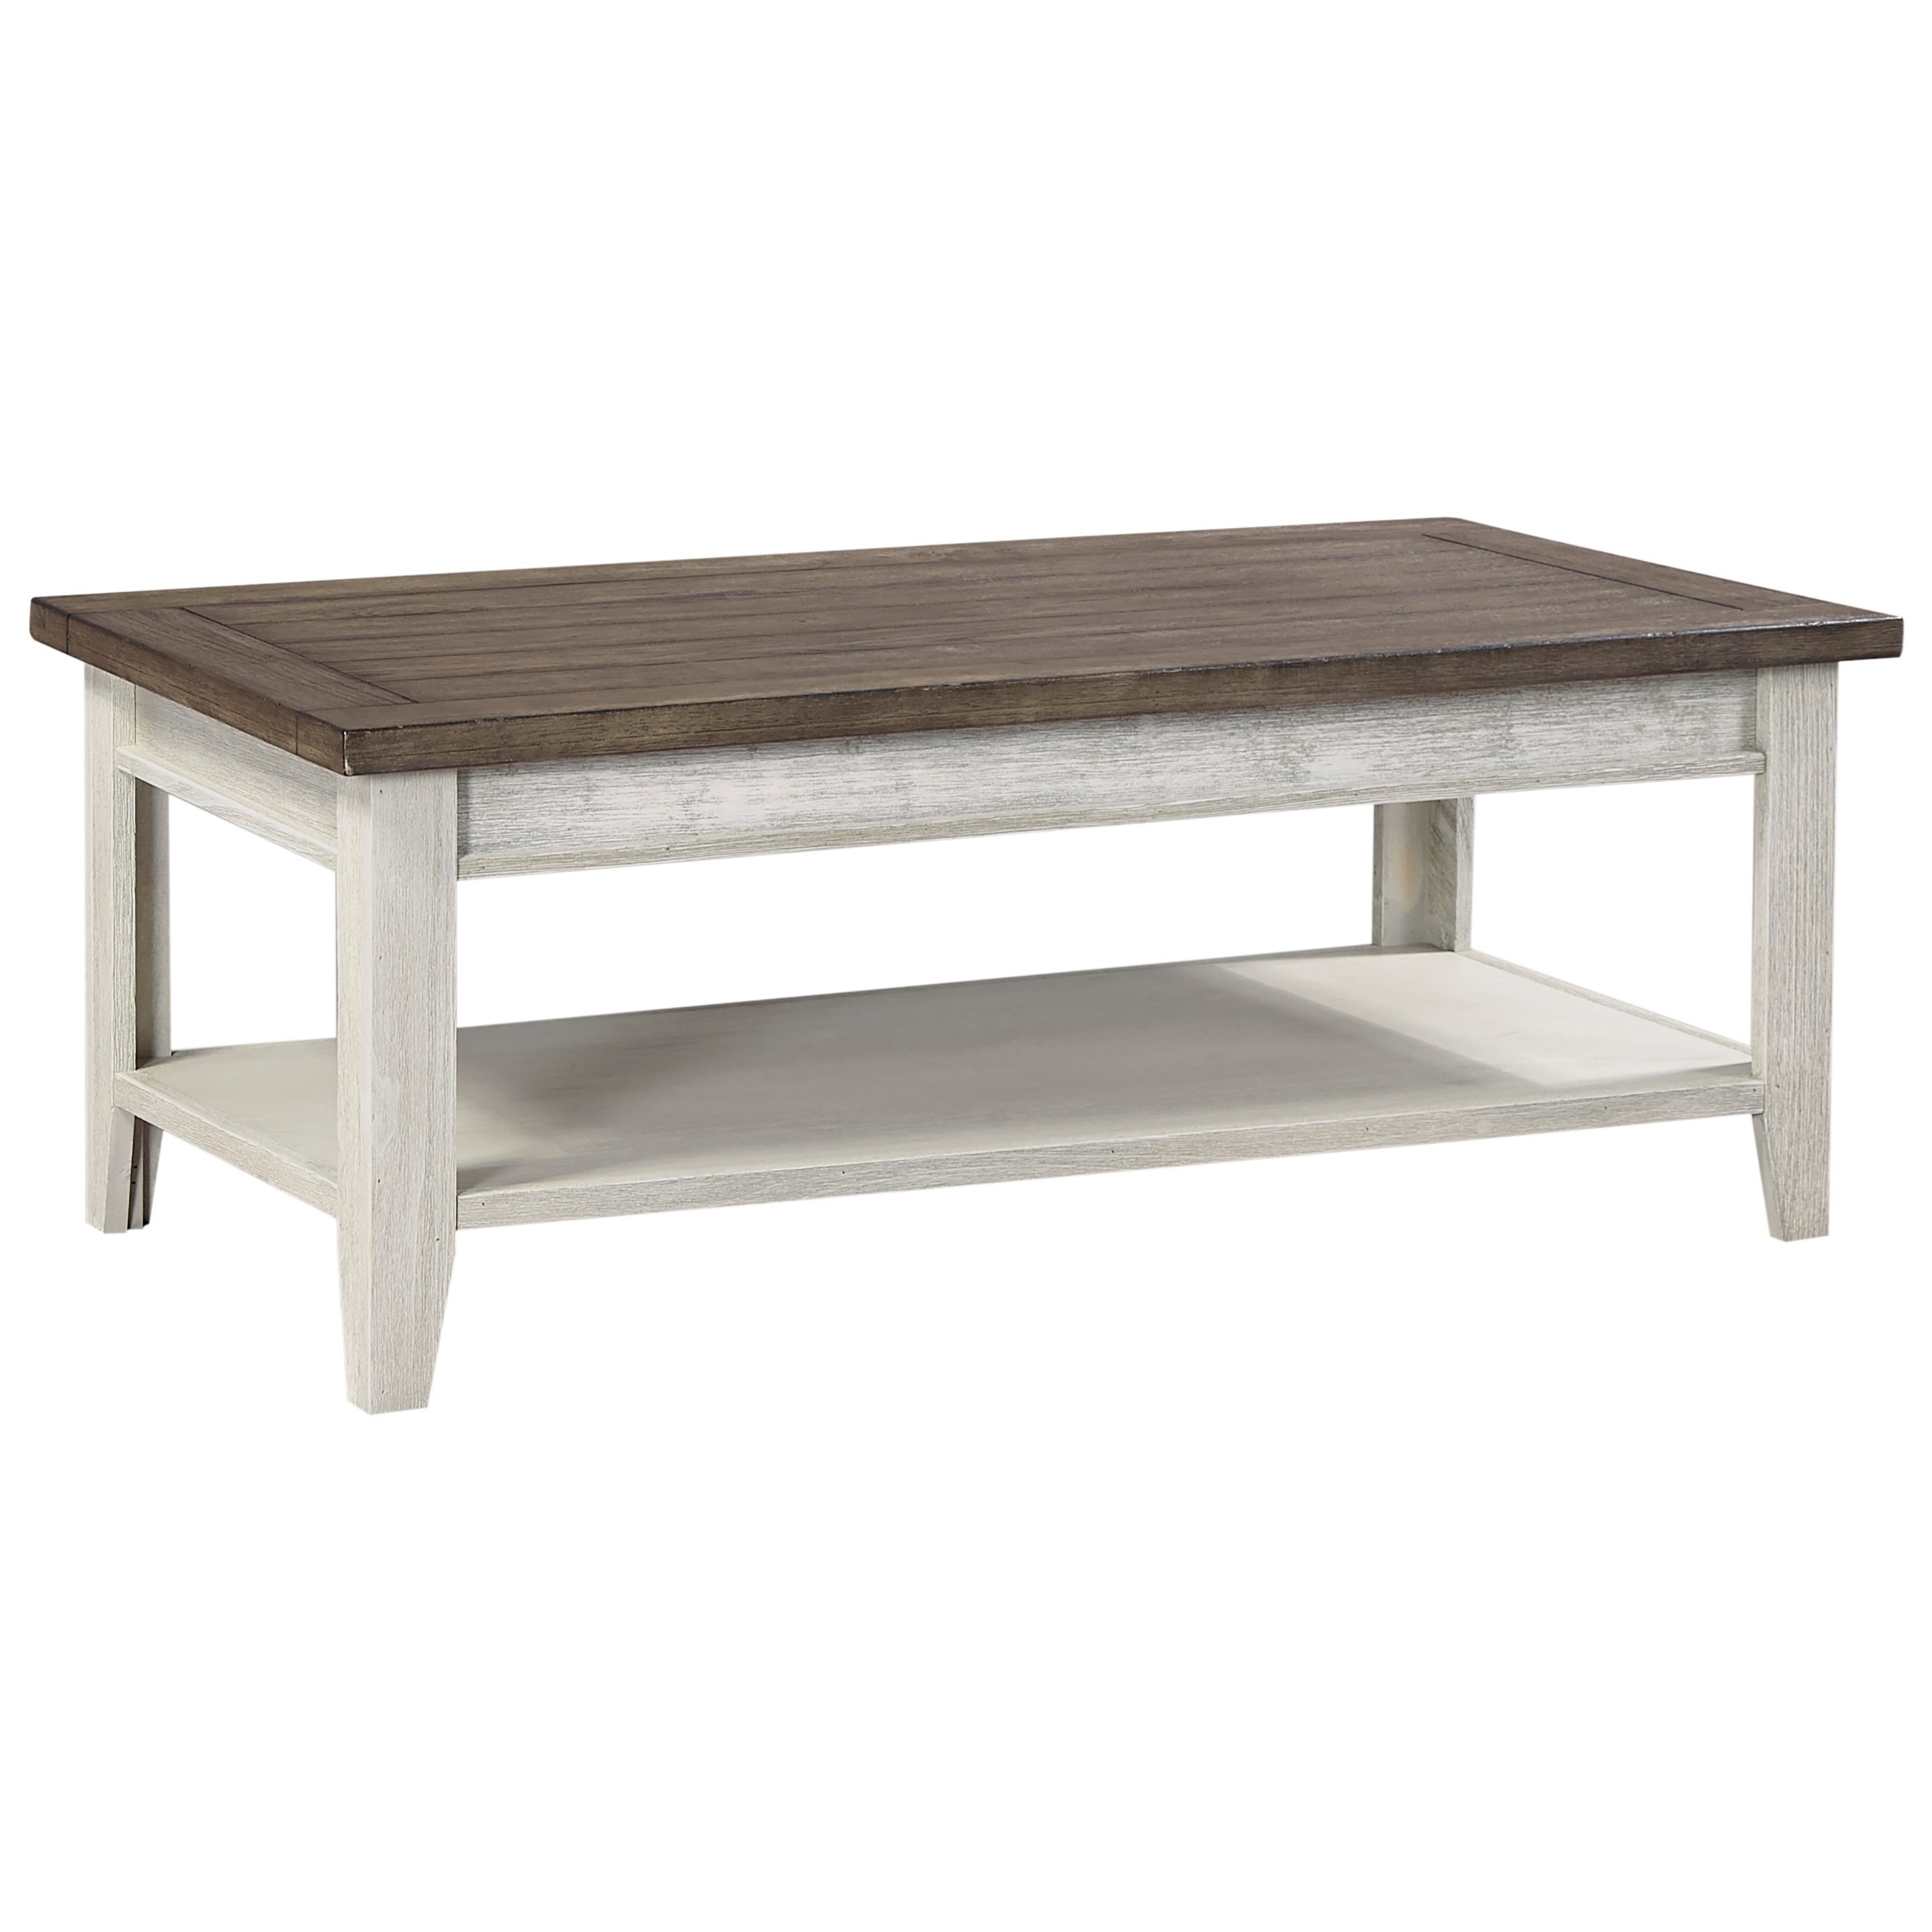 Cocktail Table with Two-Tone Finish